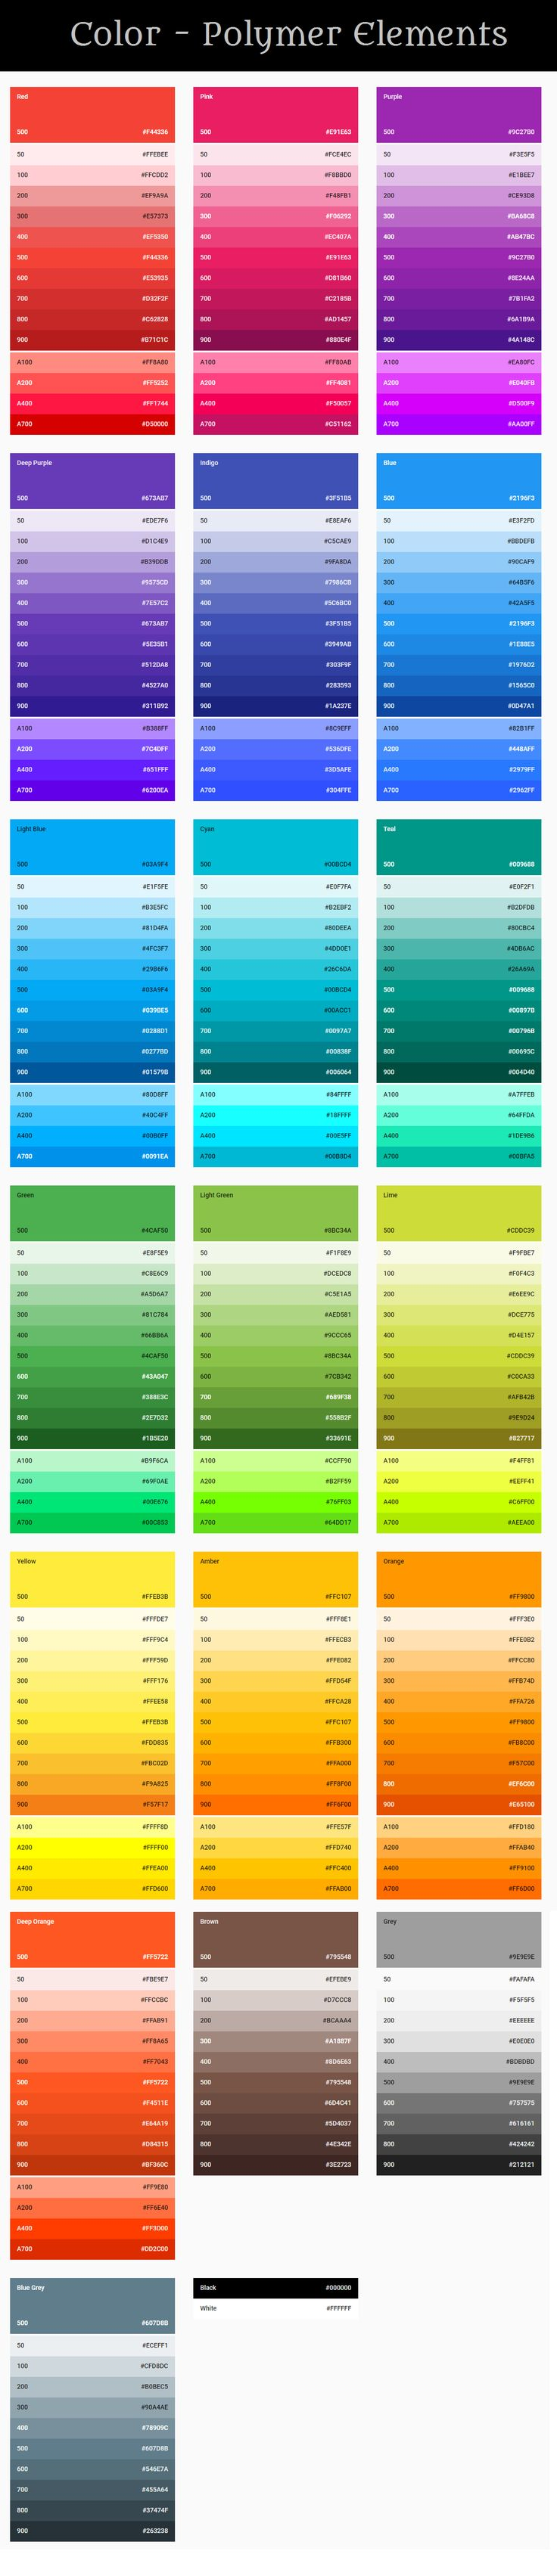 Color Polymer Elements Polymer Elements desing color UI CSS provides access to the main colors used in Website. You can sets: background, text color, outline, border color for any elements. Polymer Elements used to improve your website design . Color Combination | Color Patterns | Color Palette | Color Palette From Image | For Website. #all #Polymer #Elements #background #example #all #color #good #palette #color #palette #pattern #Shade-A-Web